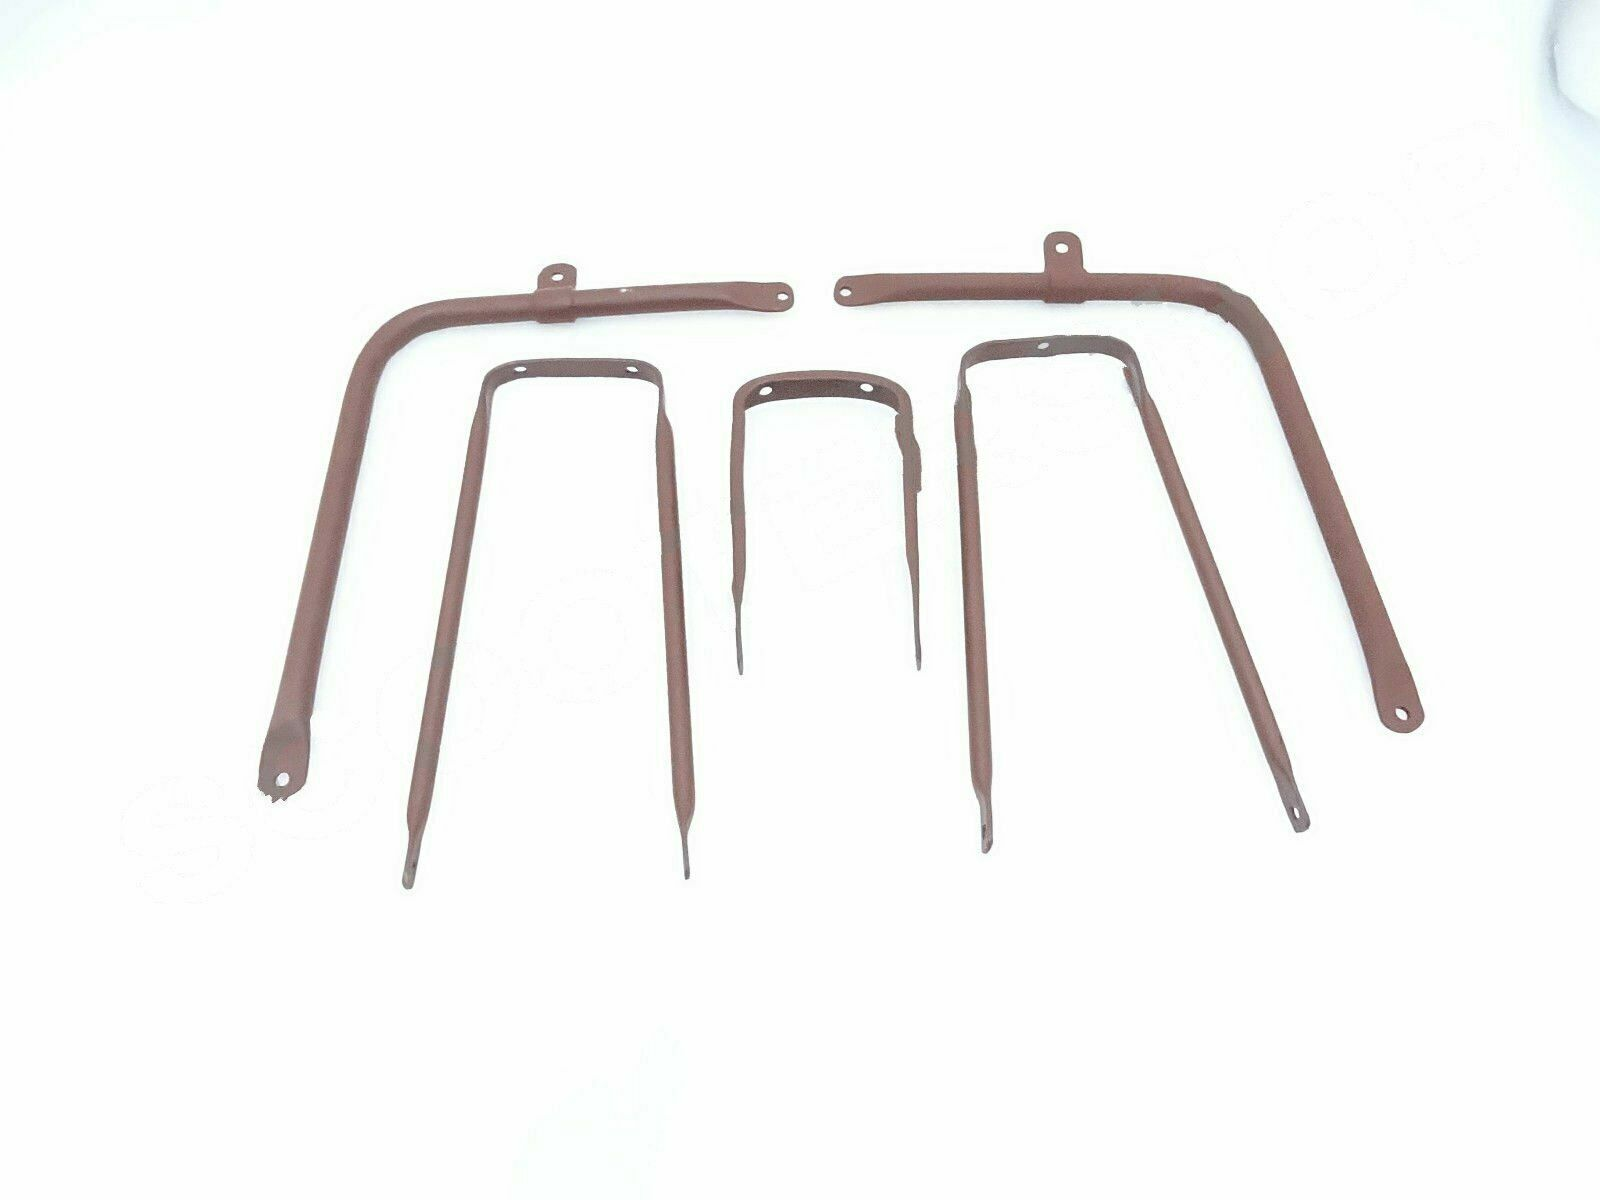 NEW BSA C10 C11 FRONT AND REAR MUDGUARDS RAW STEEL @VINTAGE